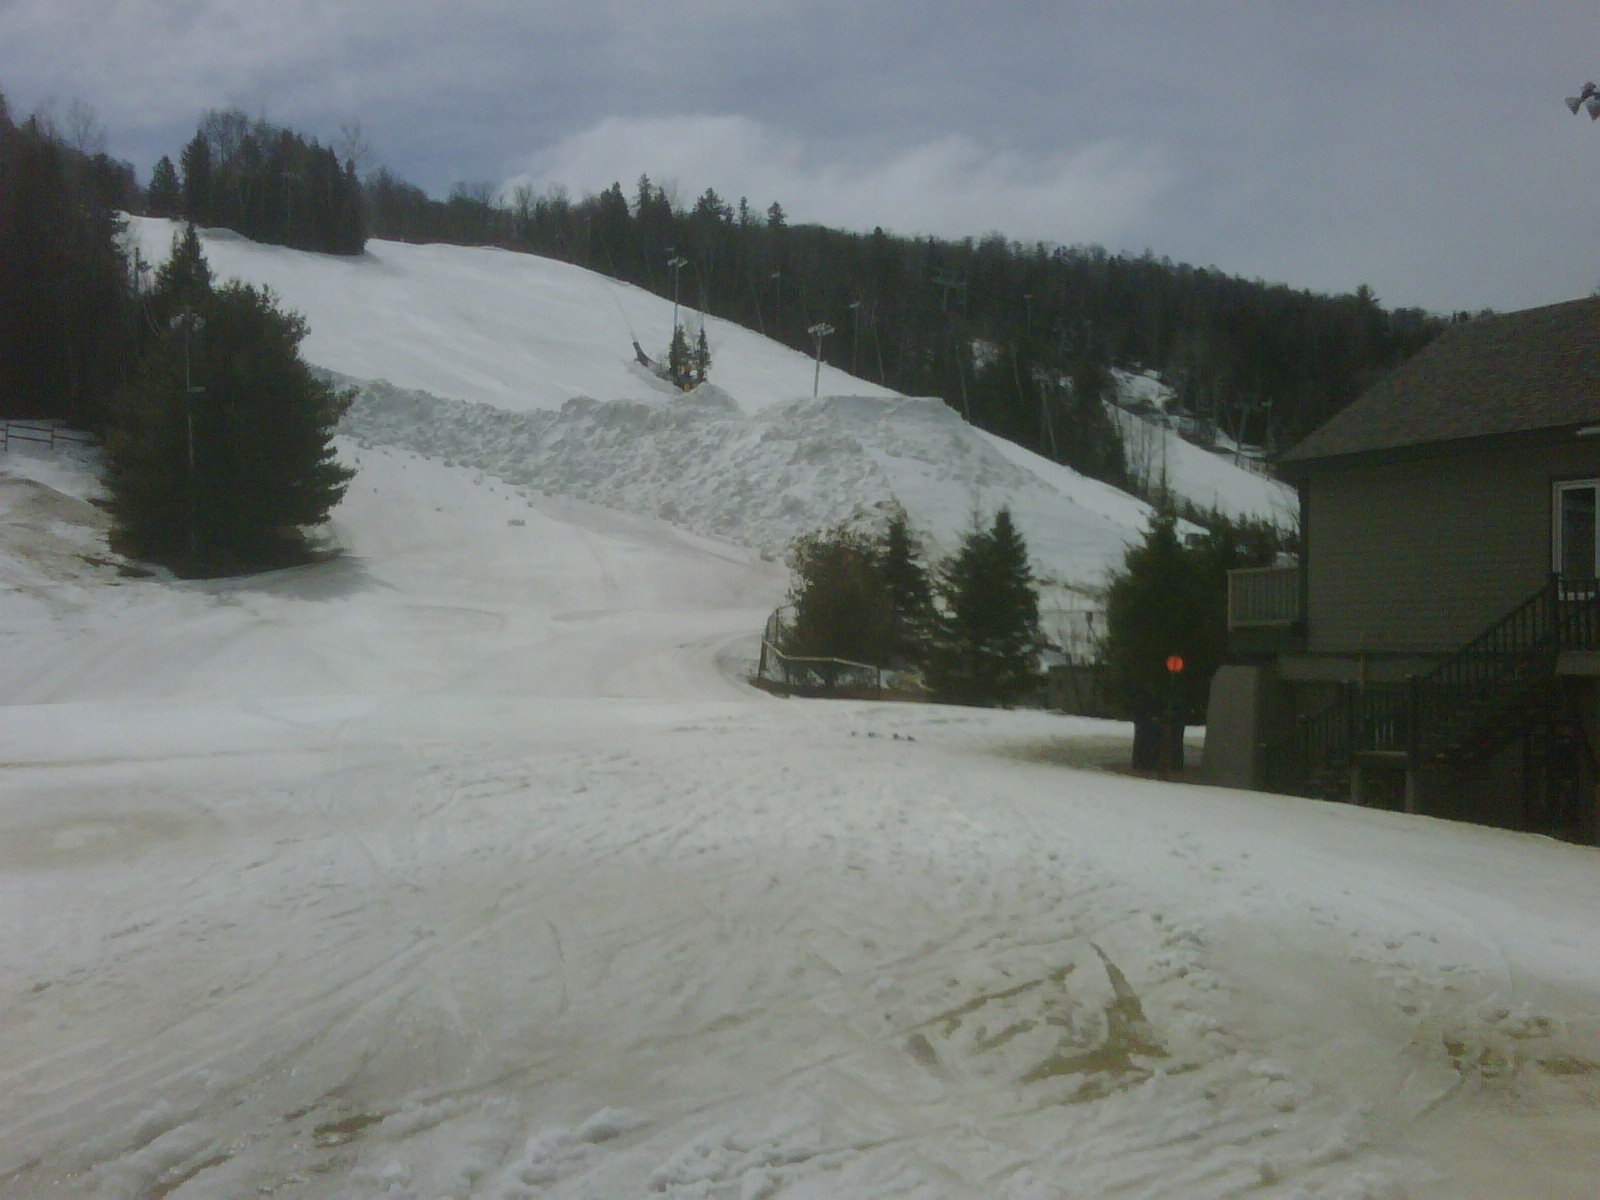 The shake down jump being made at St. Sauveur